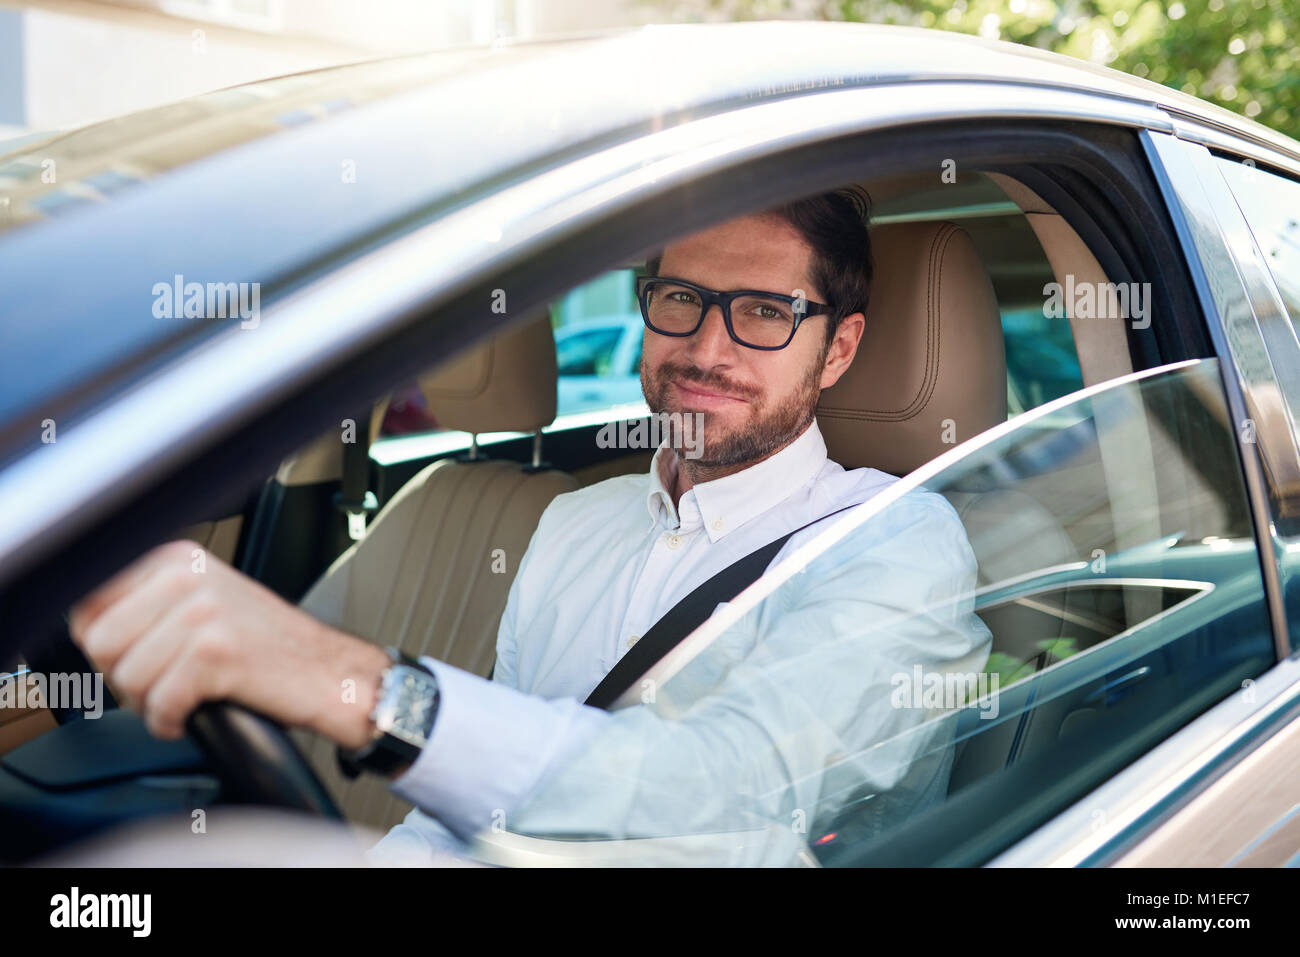 Smiling young man driving his car through the city streets - Stock Image